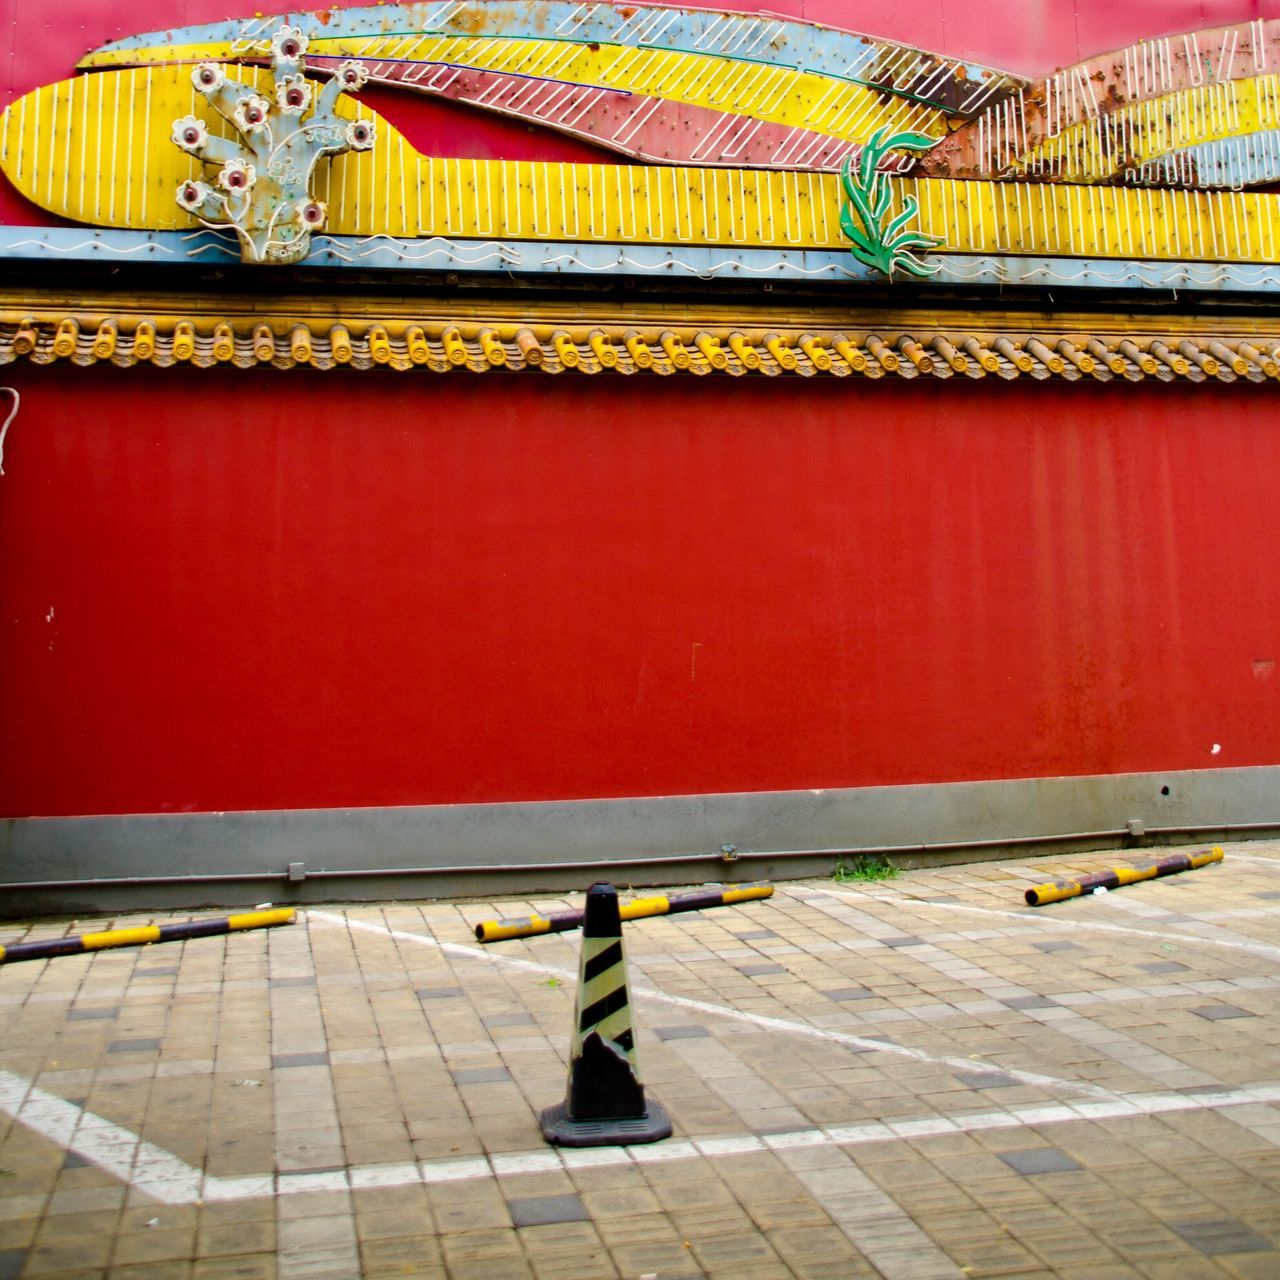 My Eyes My Beijing Architecture Tradition Low Section Adults Only Finding New Frontiers Film Fine Art BEIJING北京CHINA中国BEAUTY Urban Geometry Art Streetart China In My Eyes Muster Mix StreetArtEverywhere ArtWork Urban Exploration GetYourGuide Cityscapes